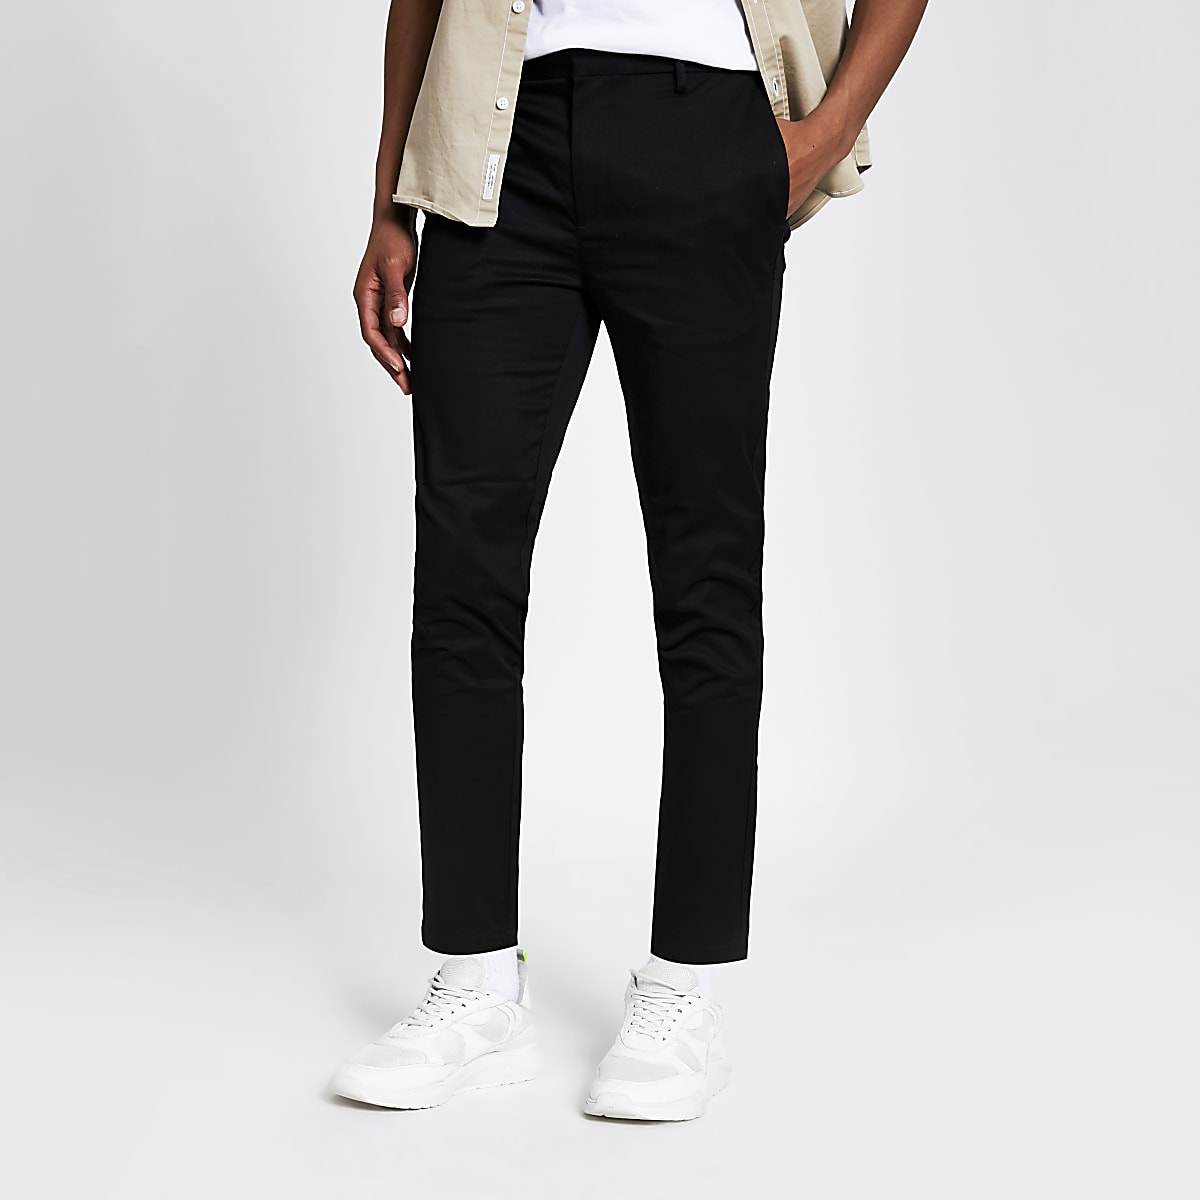 Black side tape skinny pants